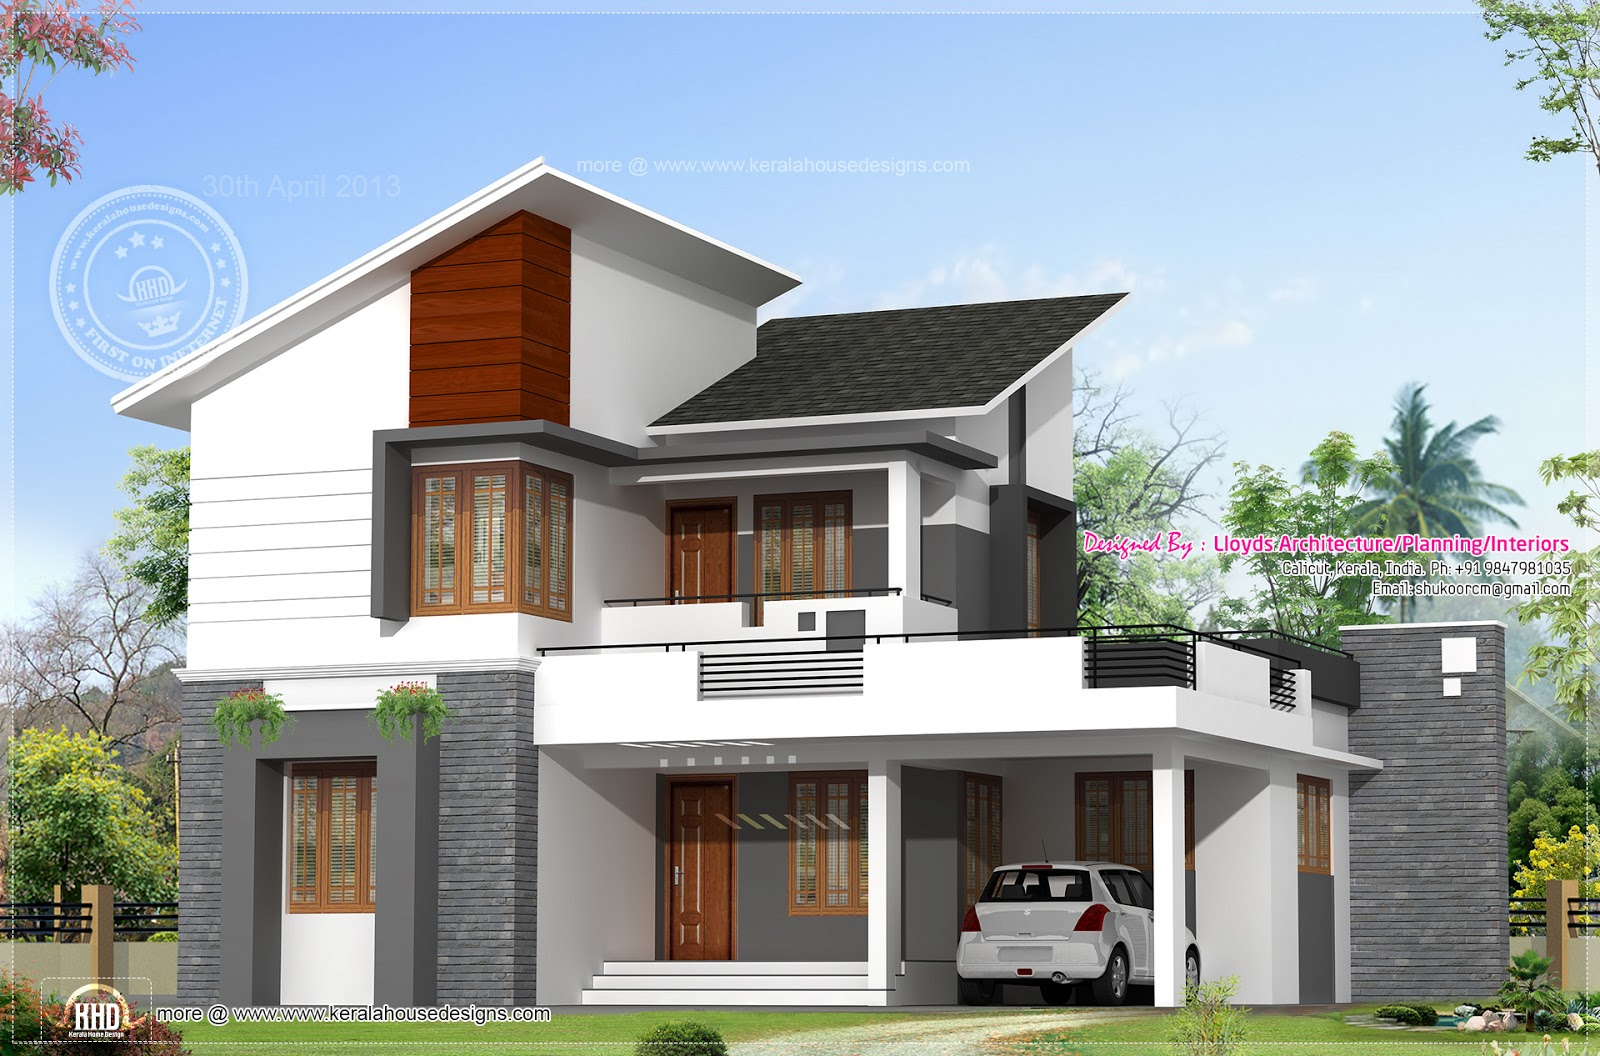 30 Feet Front Elevation : Sq feet free floor plan and elevation kerala home